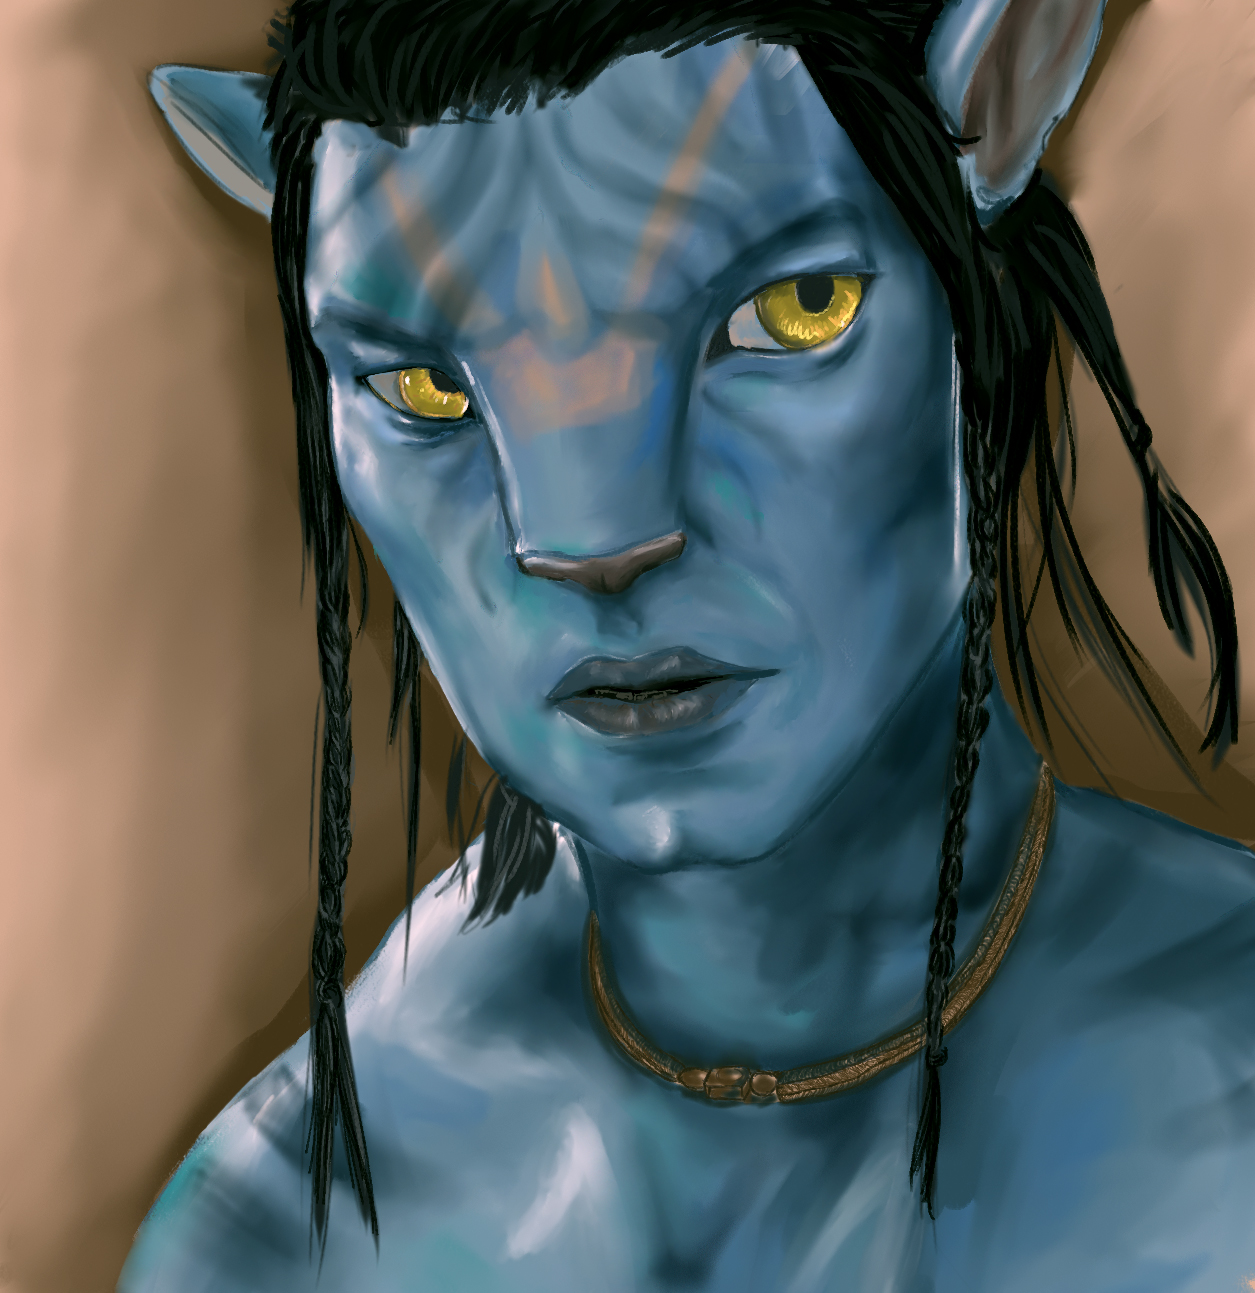 Avatar Jake: Jake Sully Avatar By Kaji02 On DeviantArt